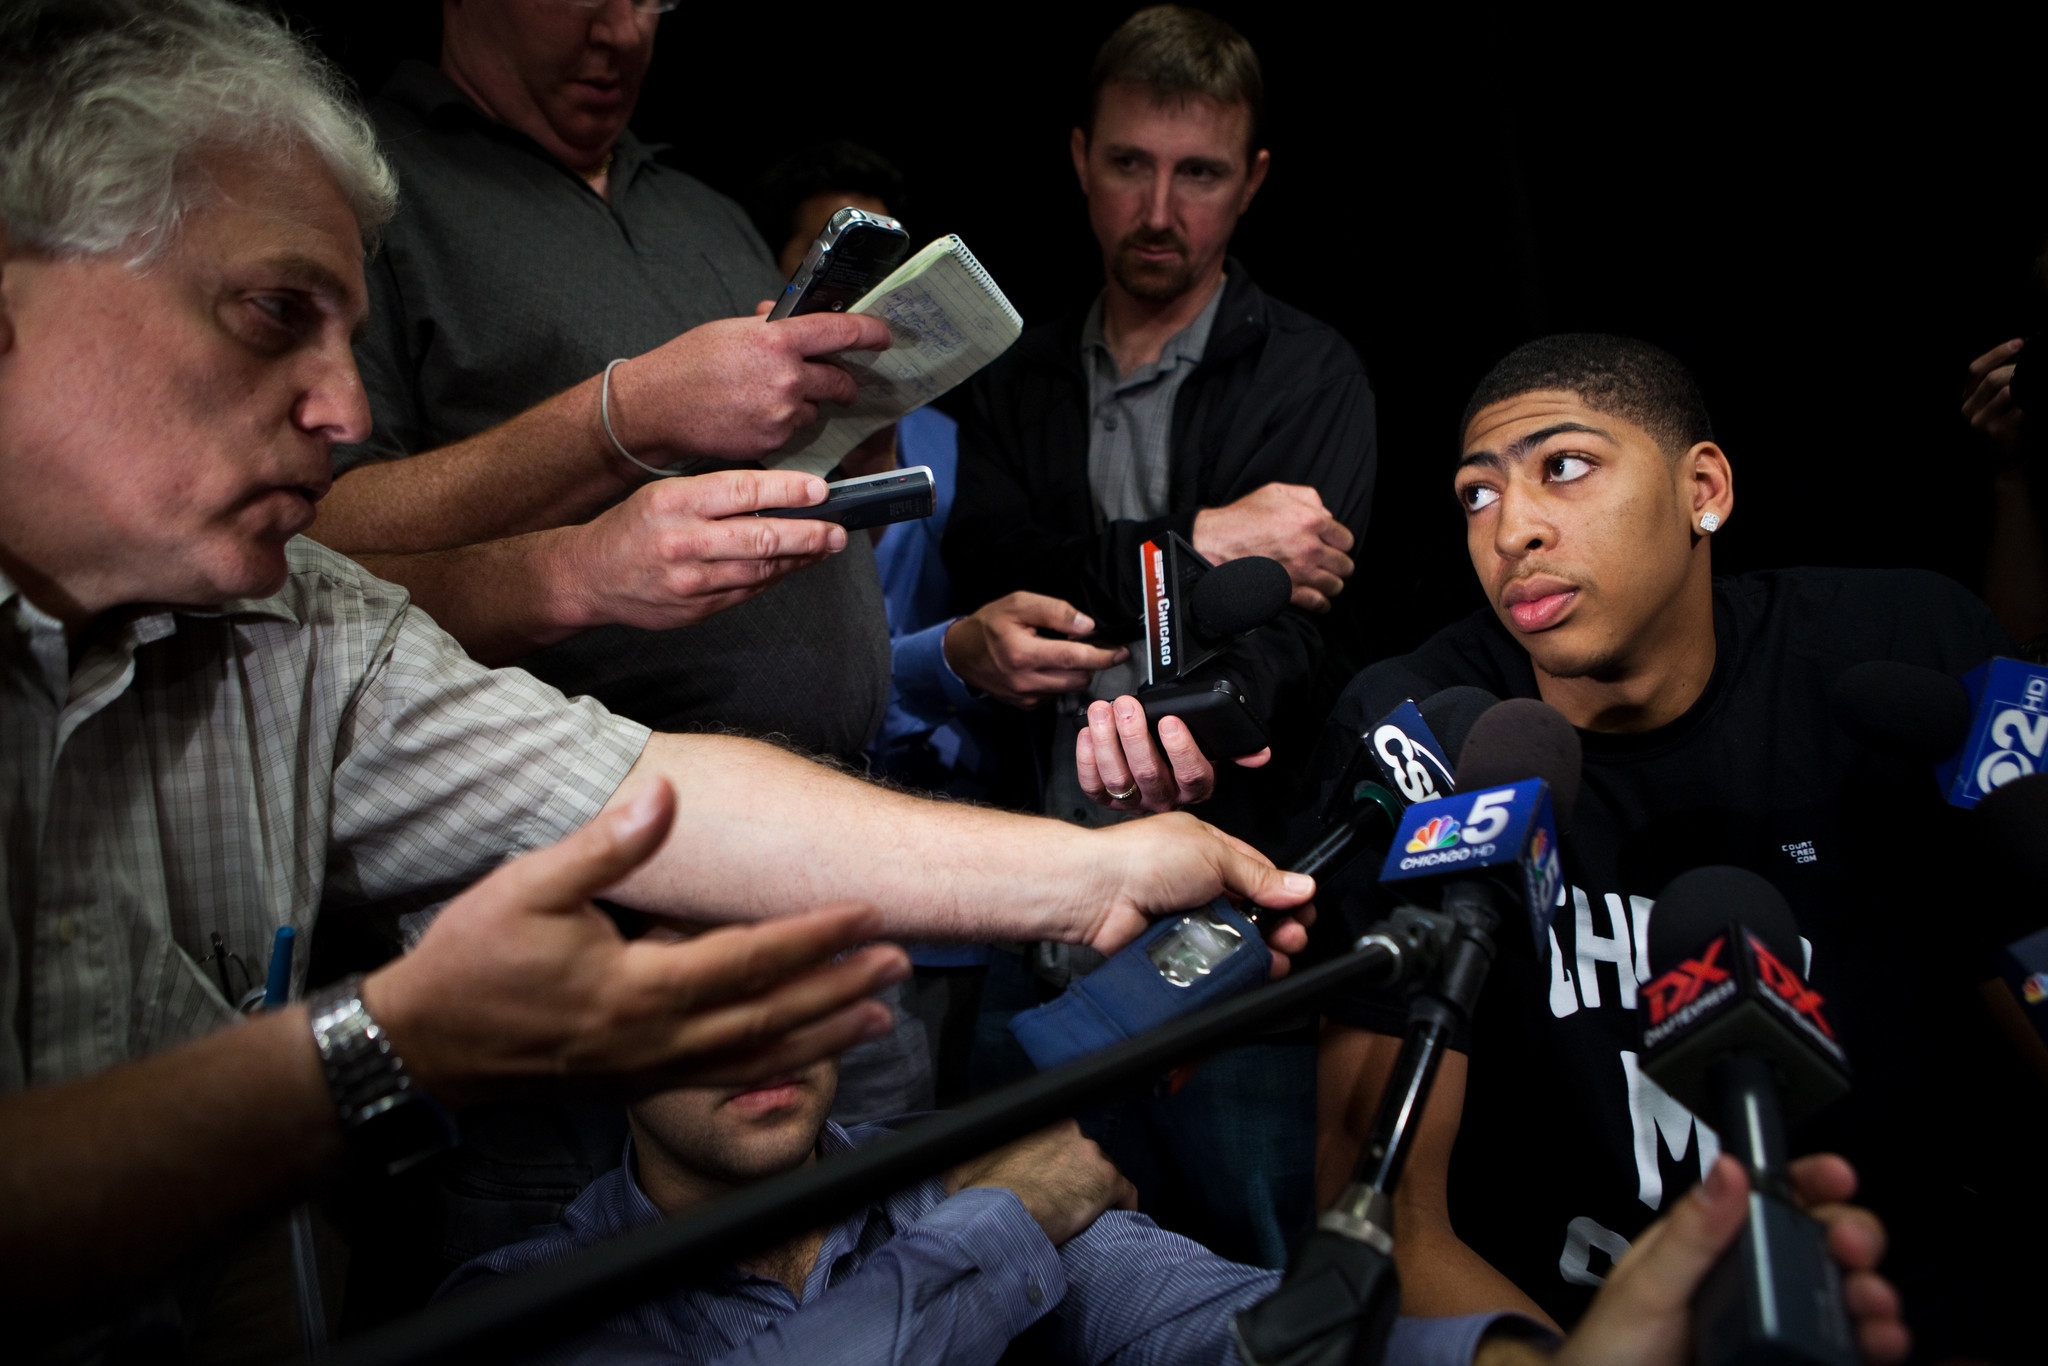 Former Kentucky star Anthony Davis talks to reporters at the Marriott Downtown Chicago Magnificent Mile Hotel on Thursday.